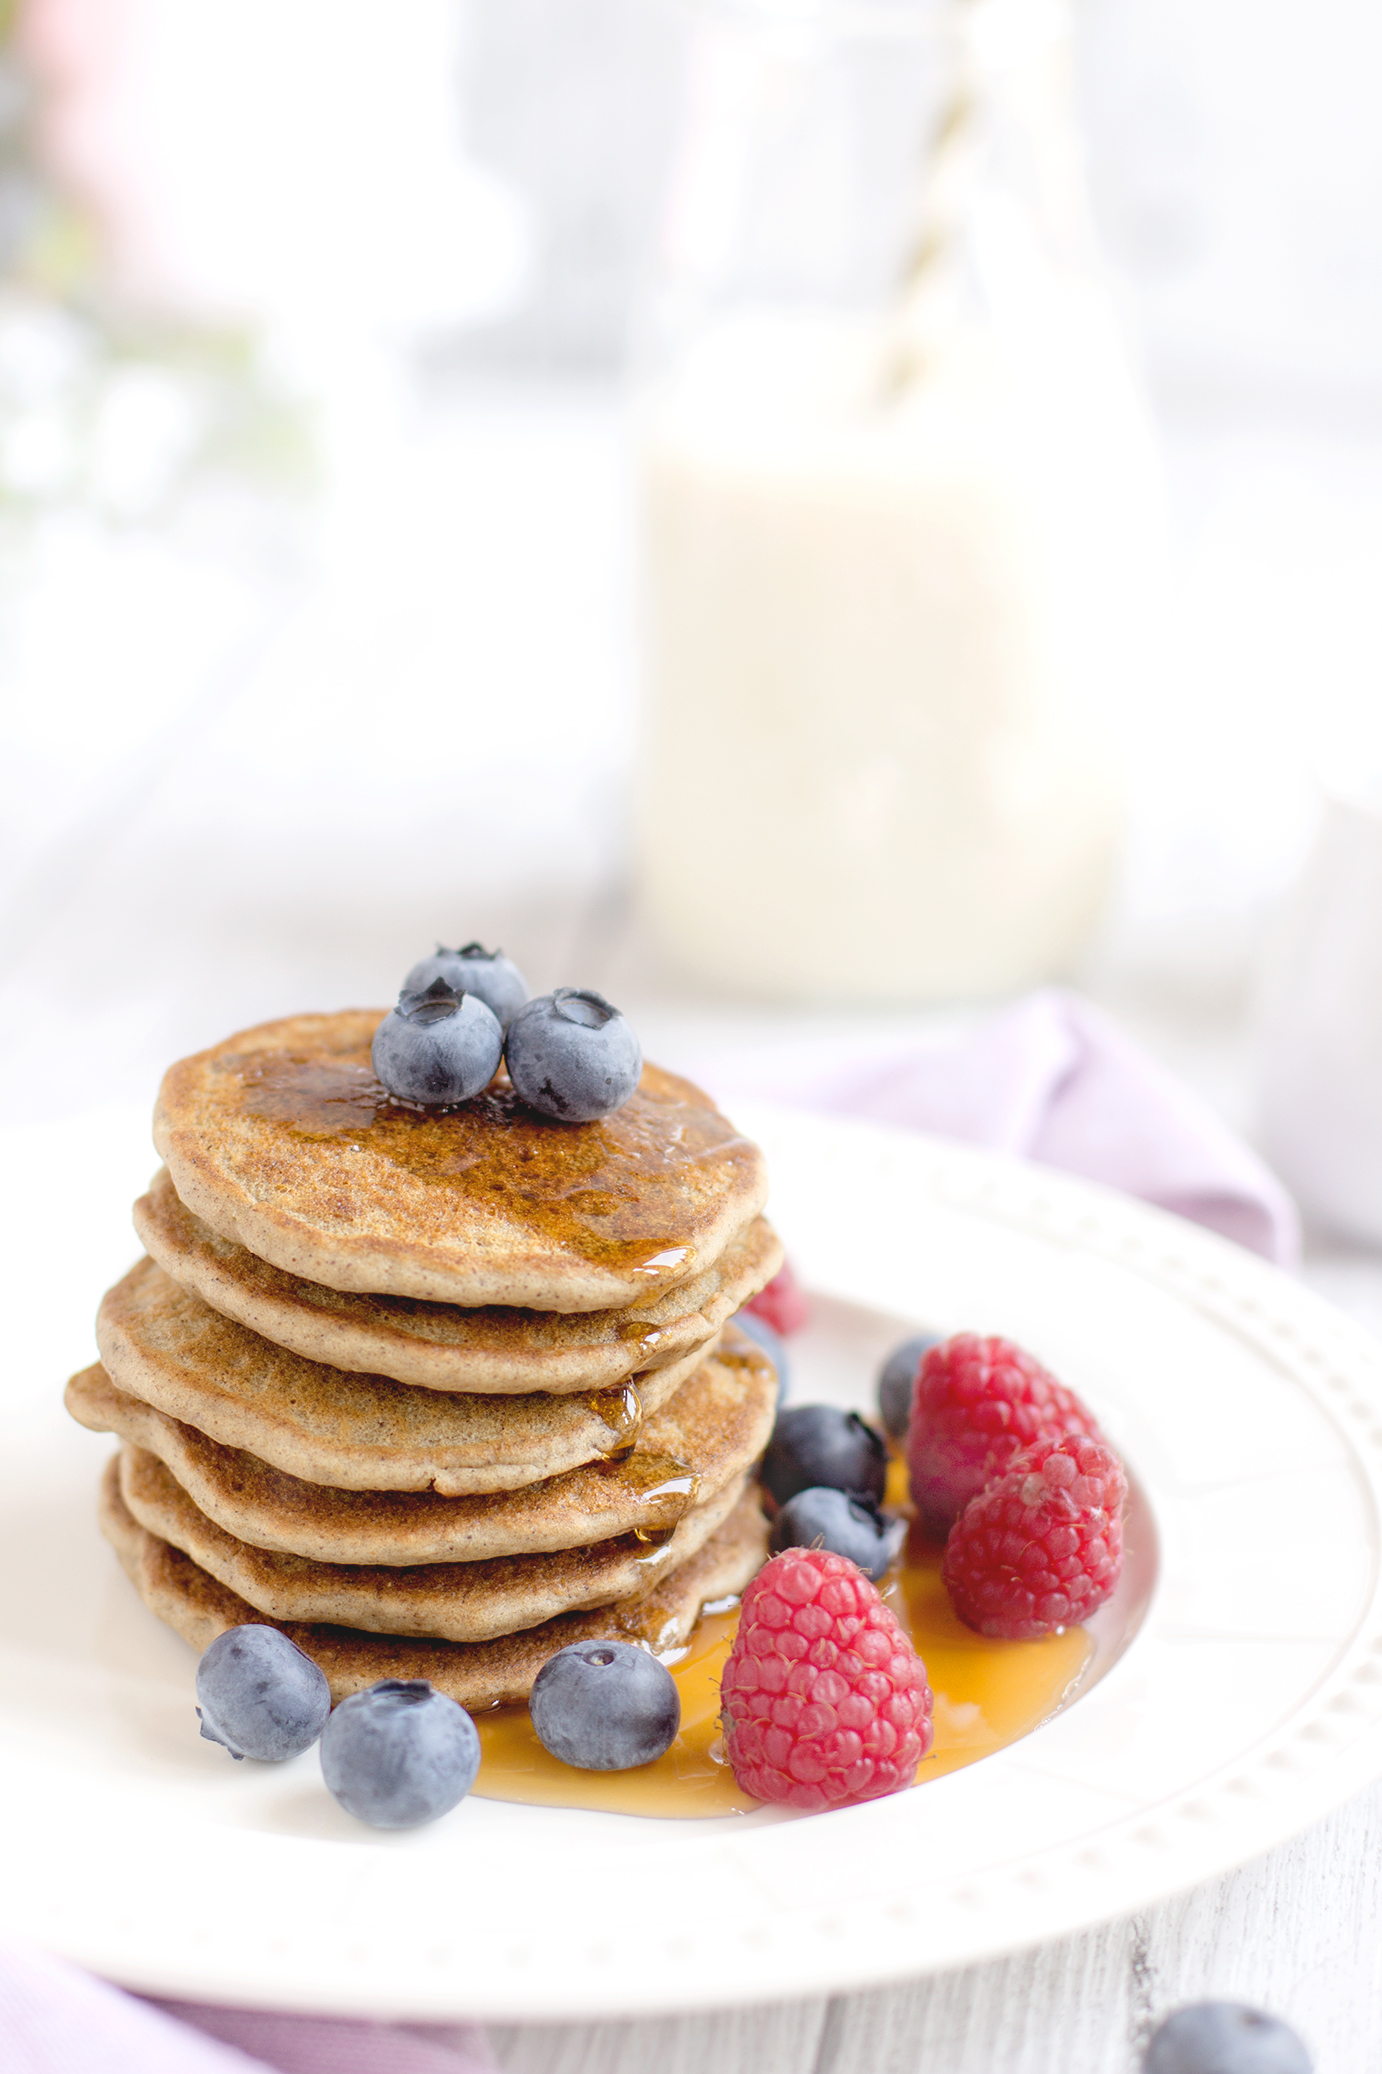 | THE BEST VEGAN GLUTENFREE PANCAKES with brown rice flour and oats // #yummy #vegan #healthy | www.beautyfoodblog.com